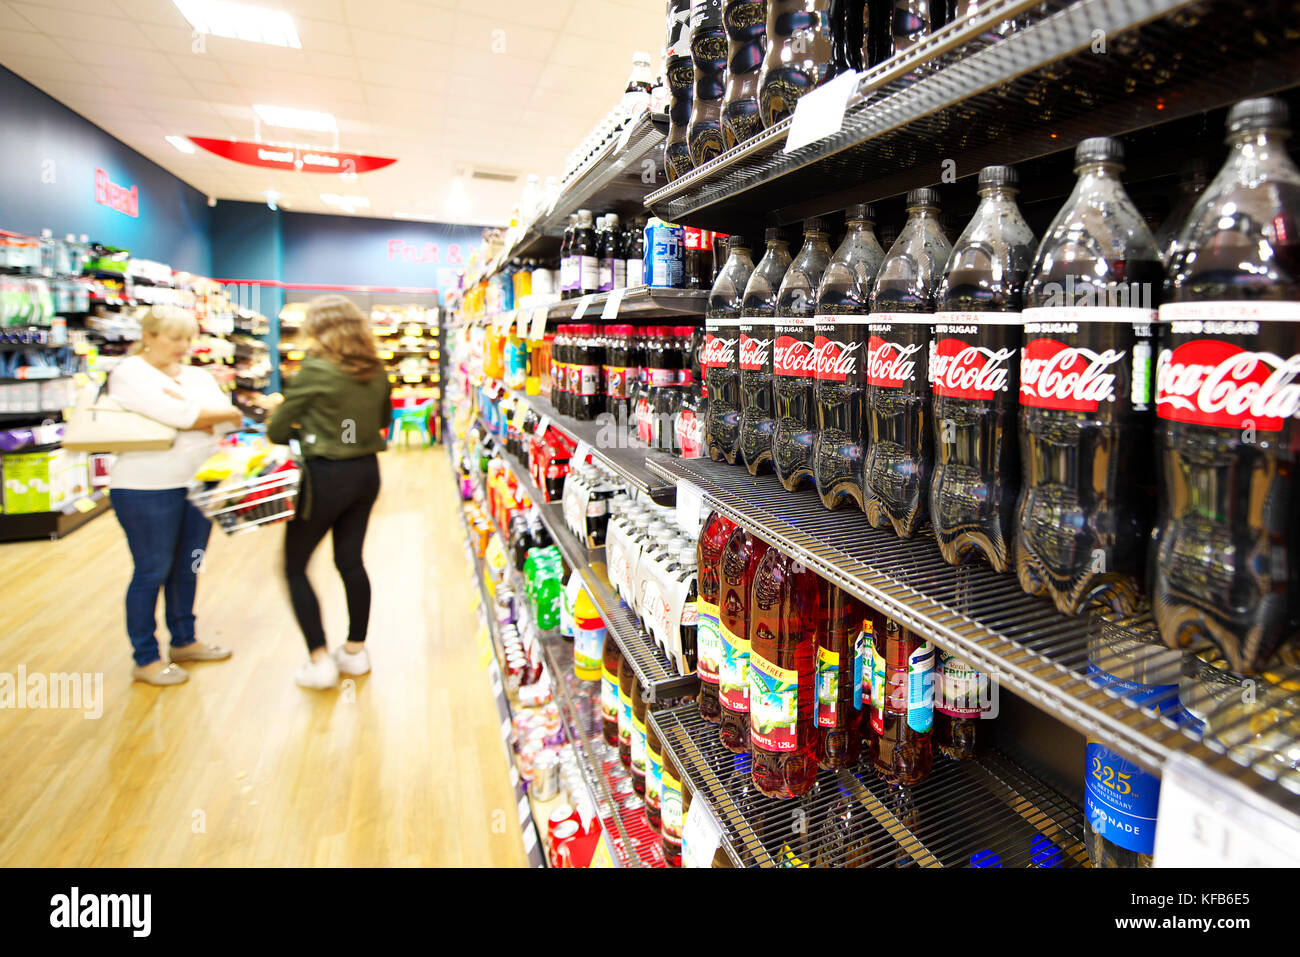 Shelves full of fat fizzy and zero sugar fizzy drinks for children and adults. Coca Cola in frame - Stock Image